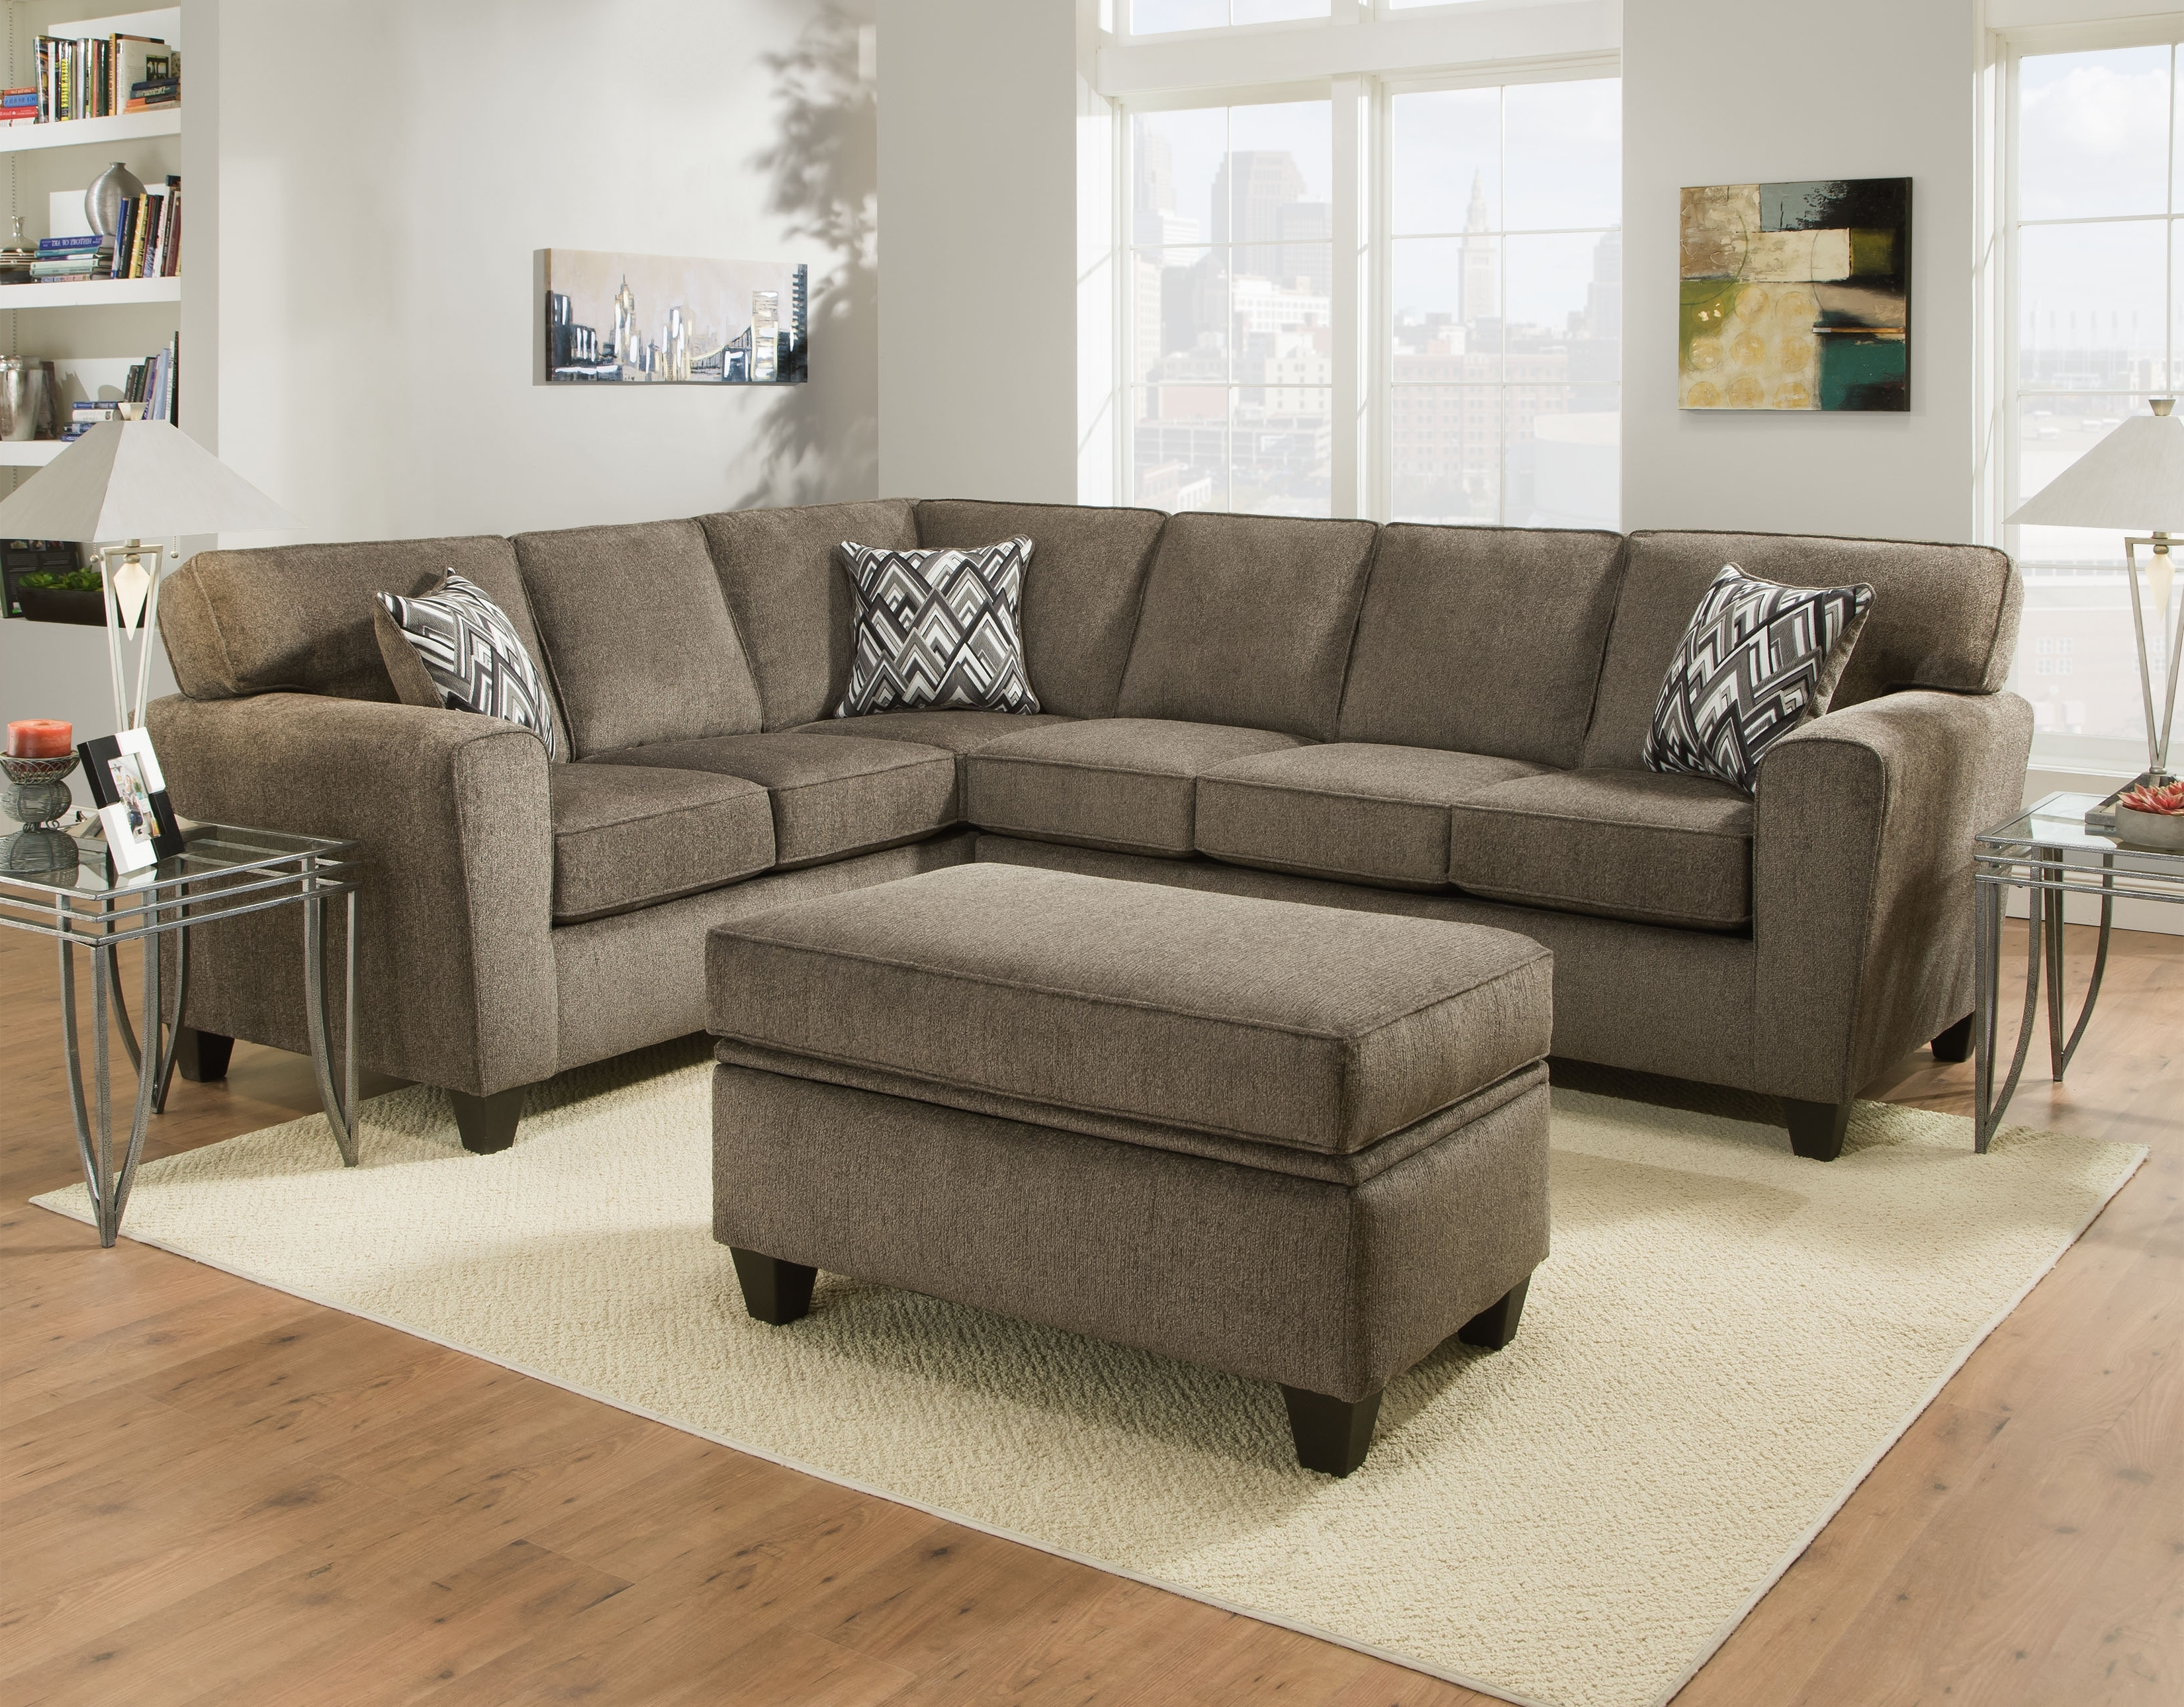 2018 Living Room – Crazy Joe's Best Deal Furniture With Regard To Janesville Wi Sectional Sofas (View 3 of 20)